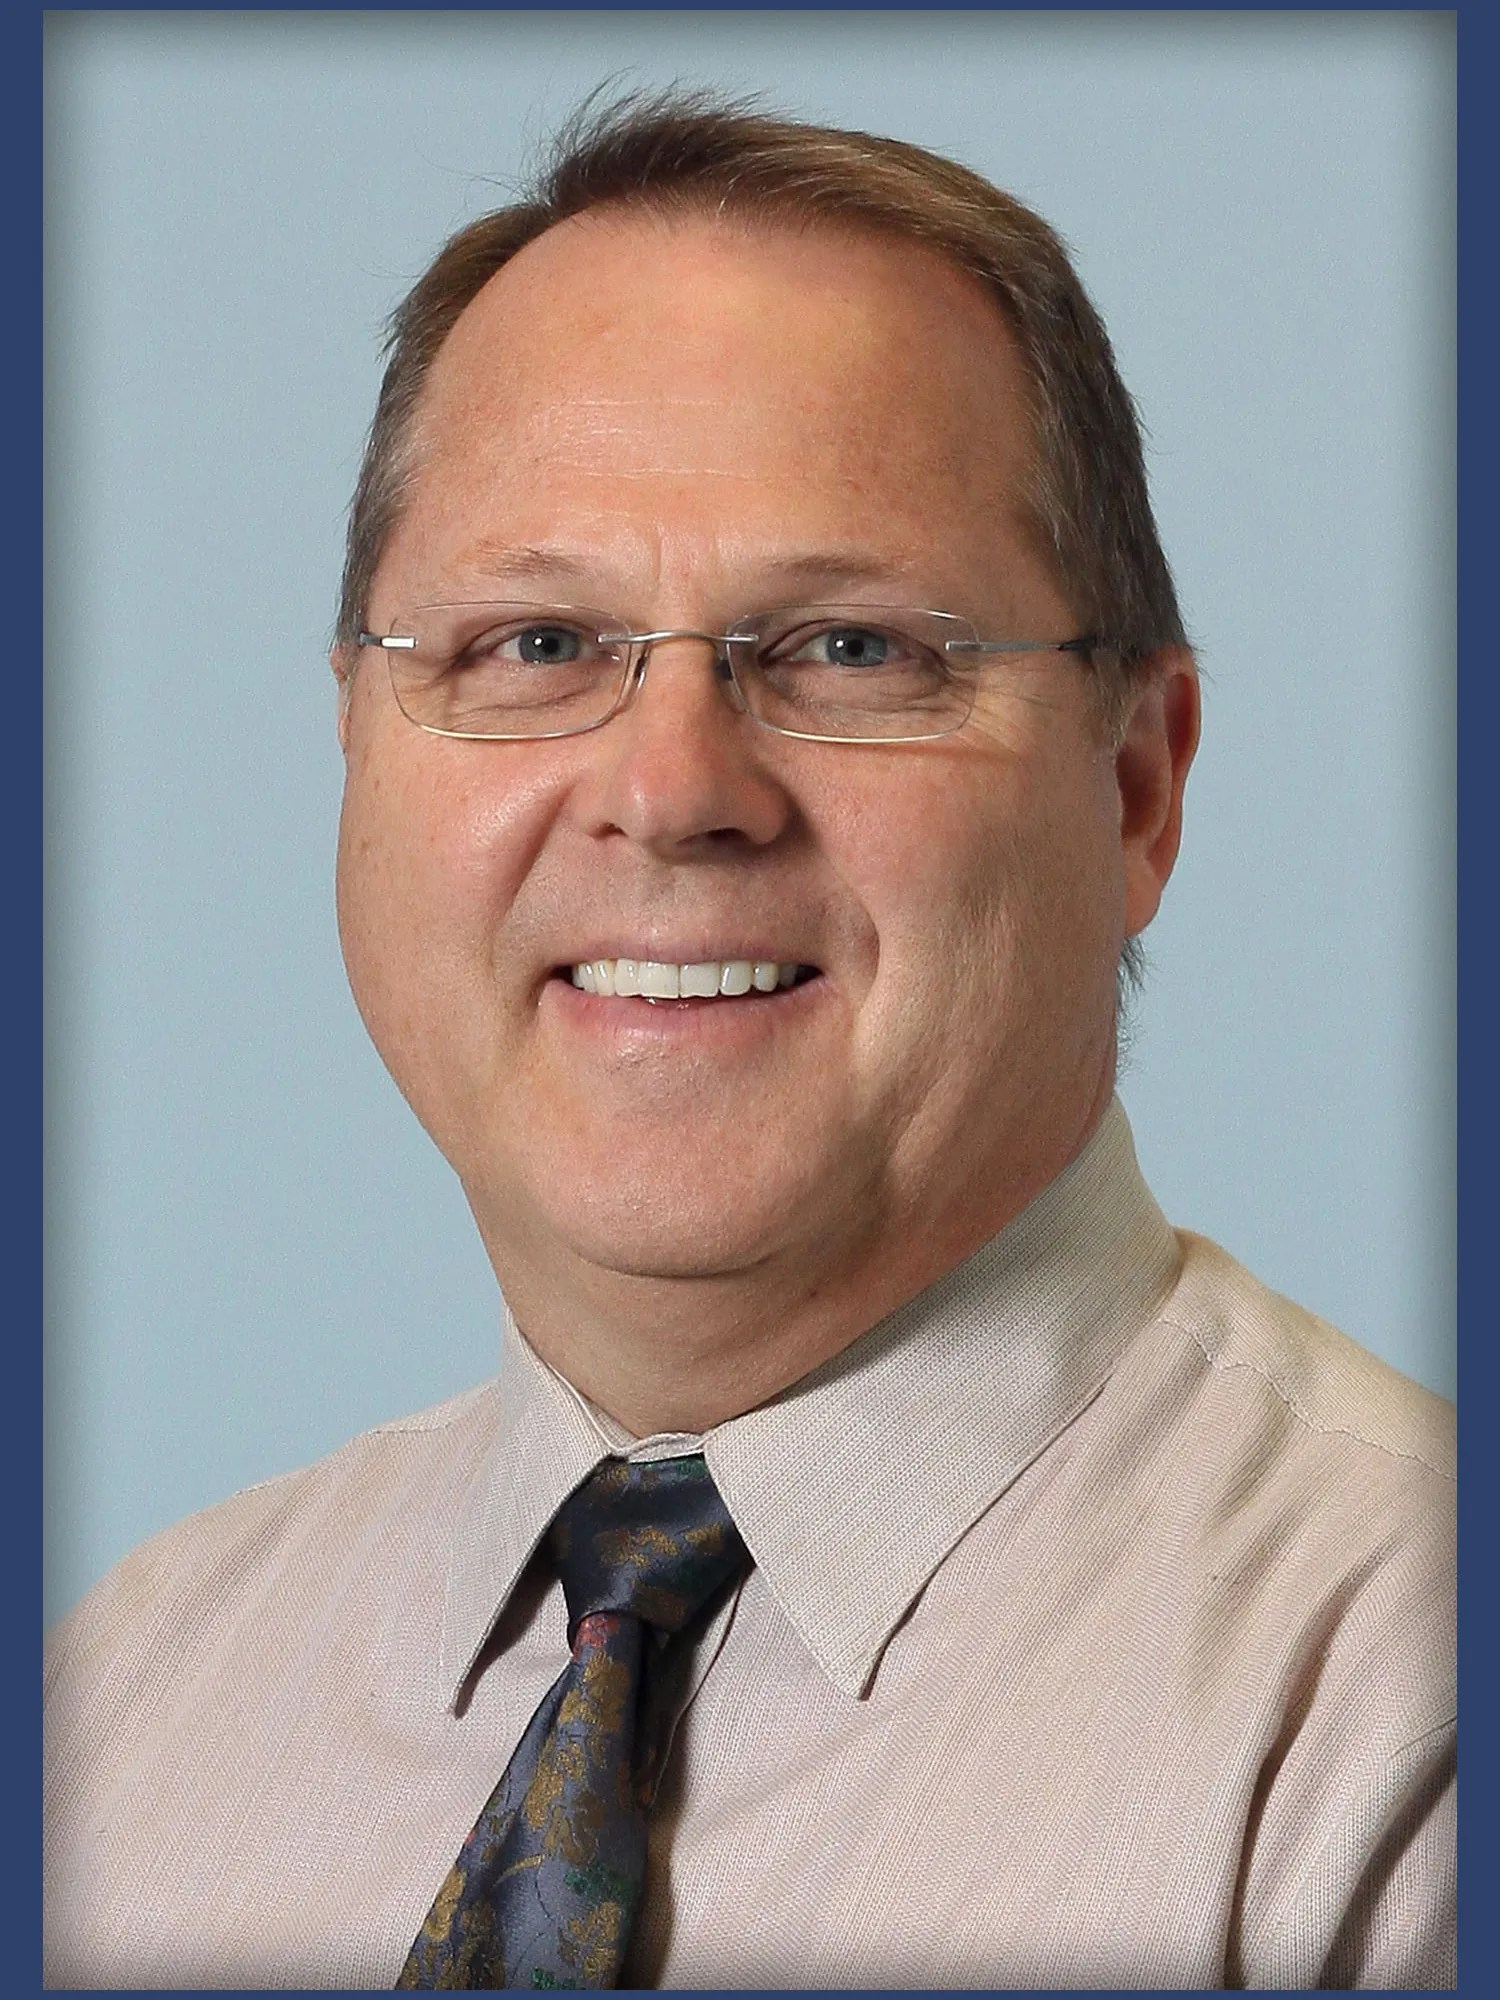 Local schools technology director dies unexpectedly